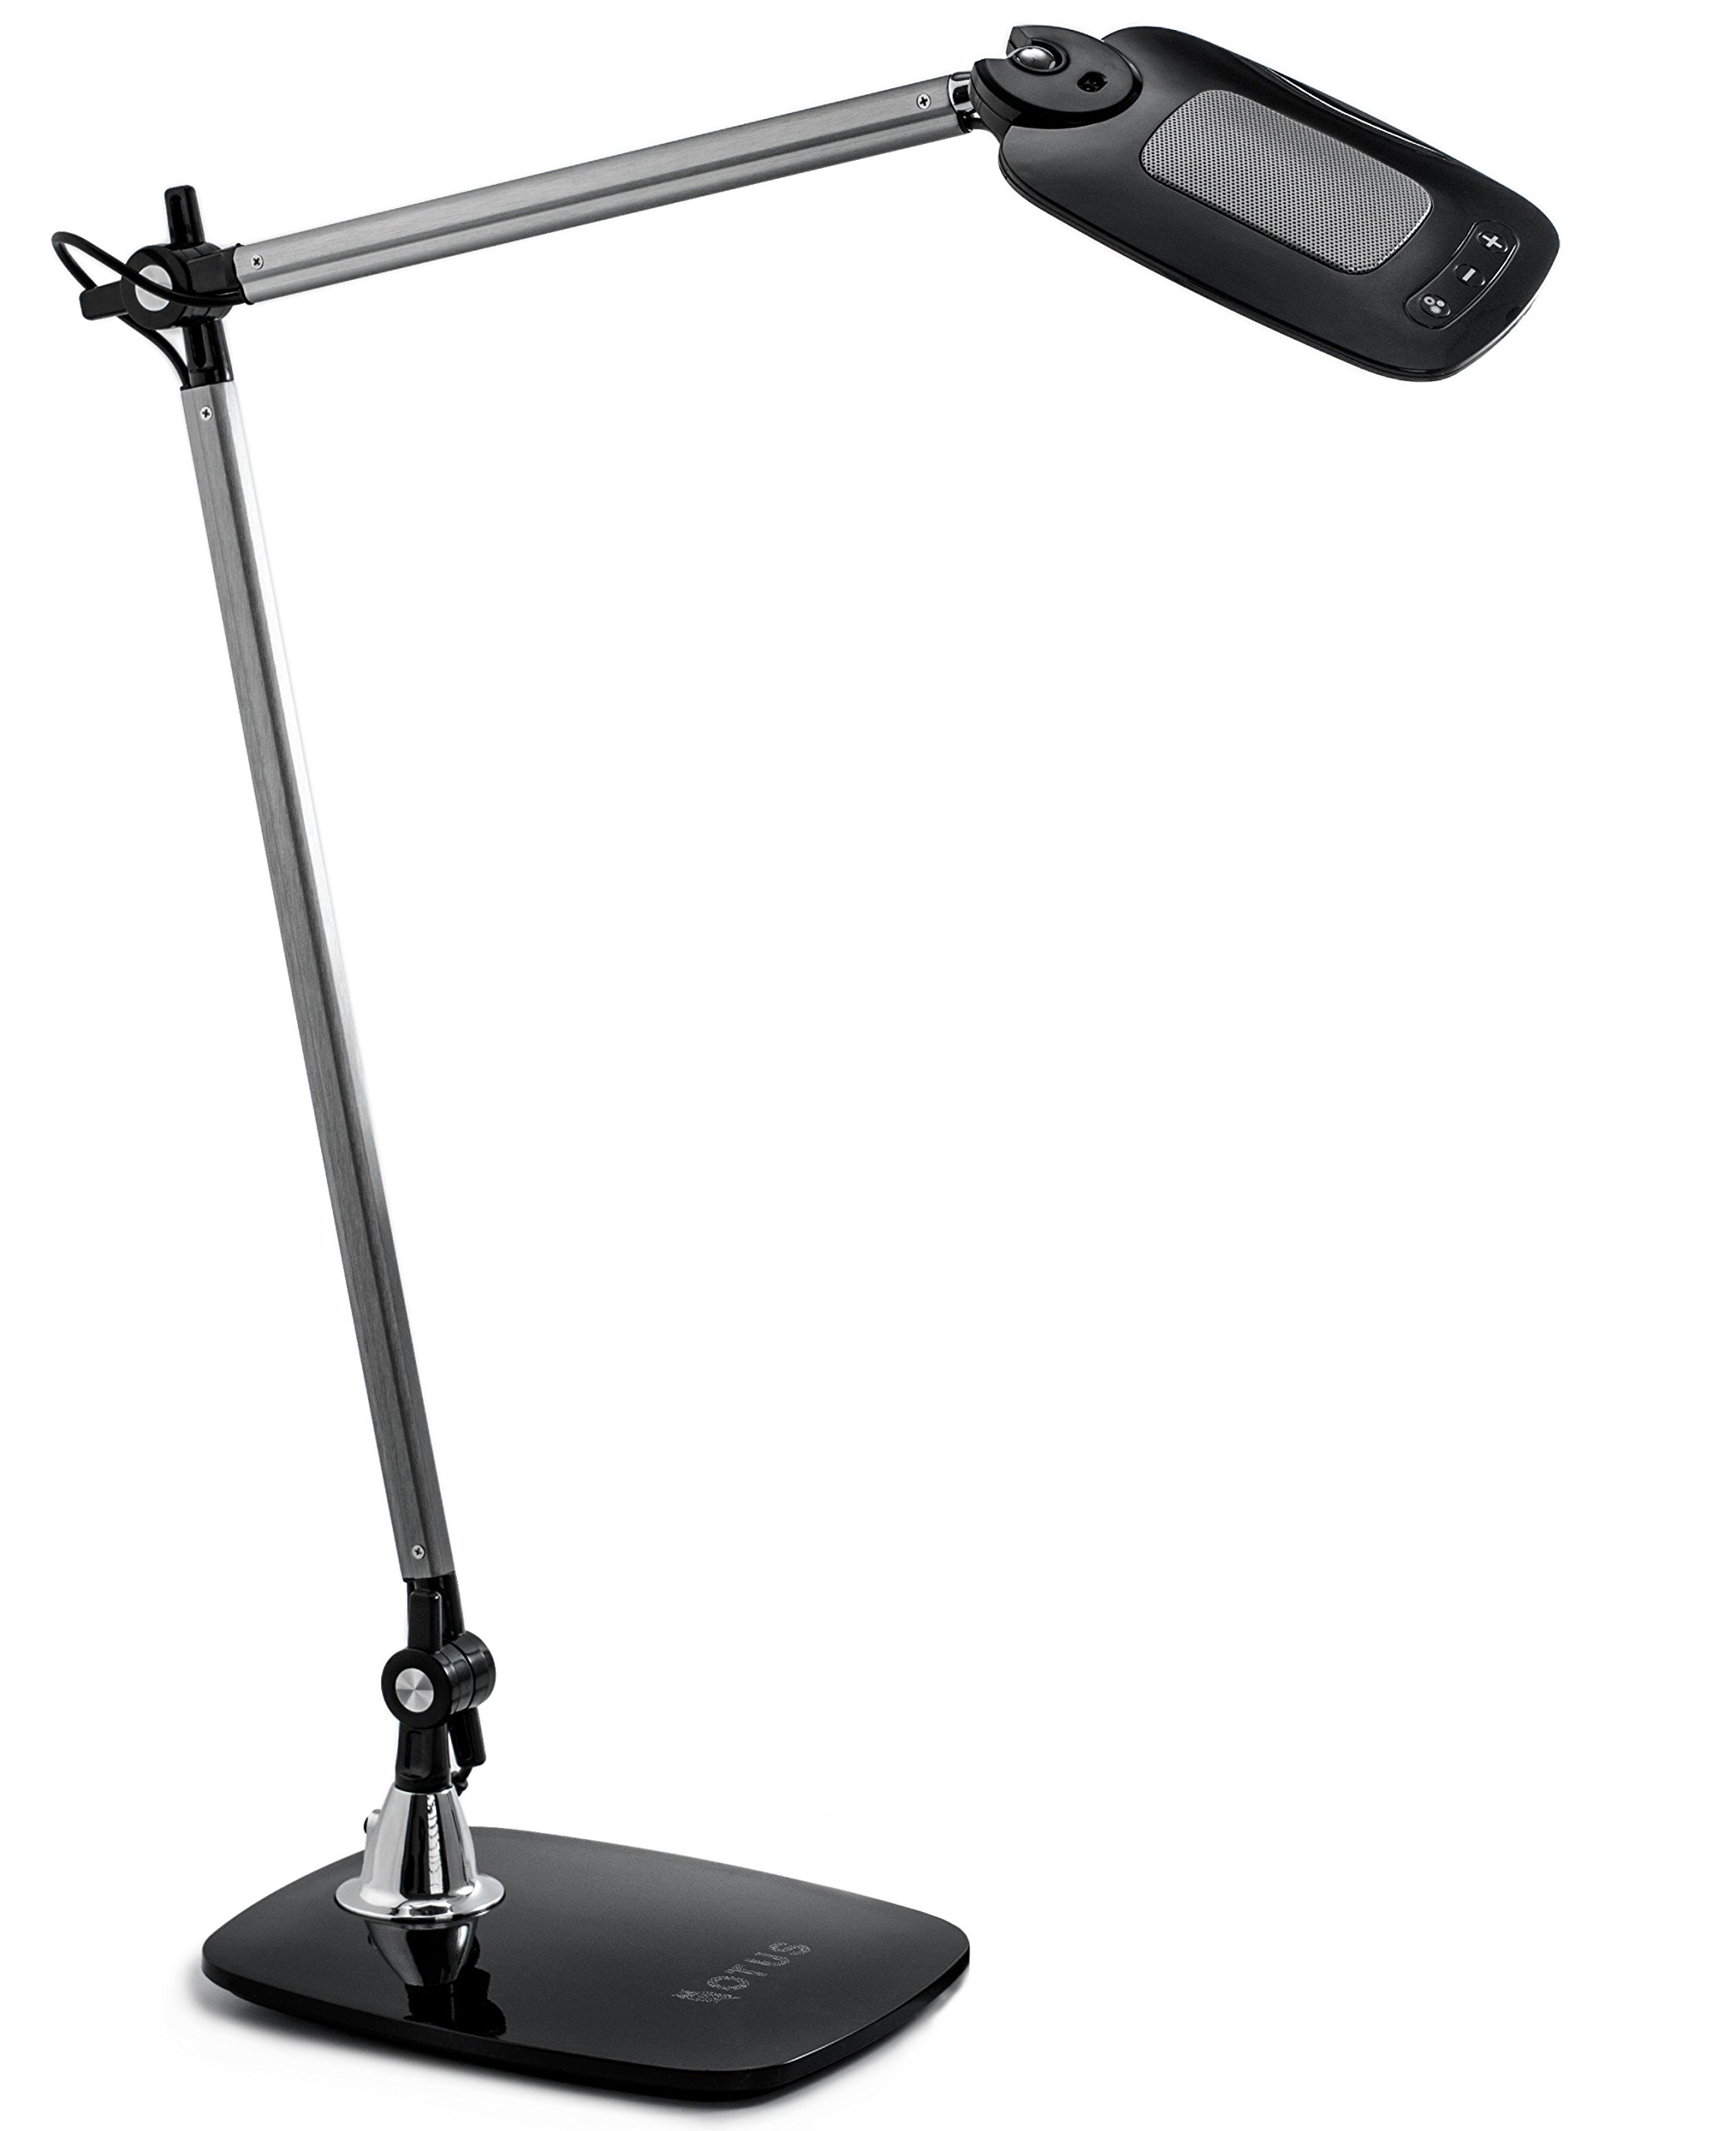 LED Desk Lamp Gesture Control - Adjustable Architect Lamp - Tall Drafting Table Lamp - Eye-care Desk Lighting Office 3 Color Modes 12 Dimmable Levels - Black